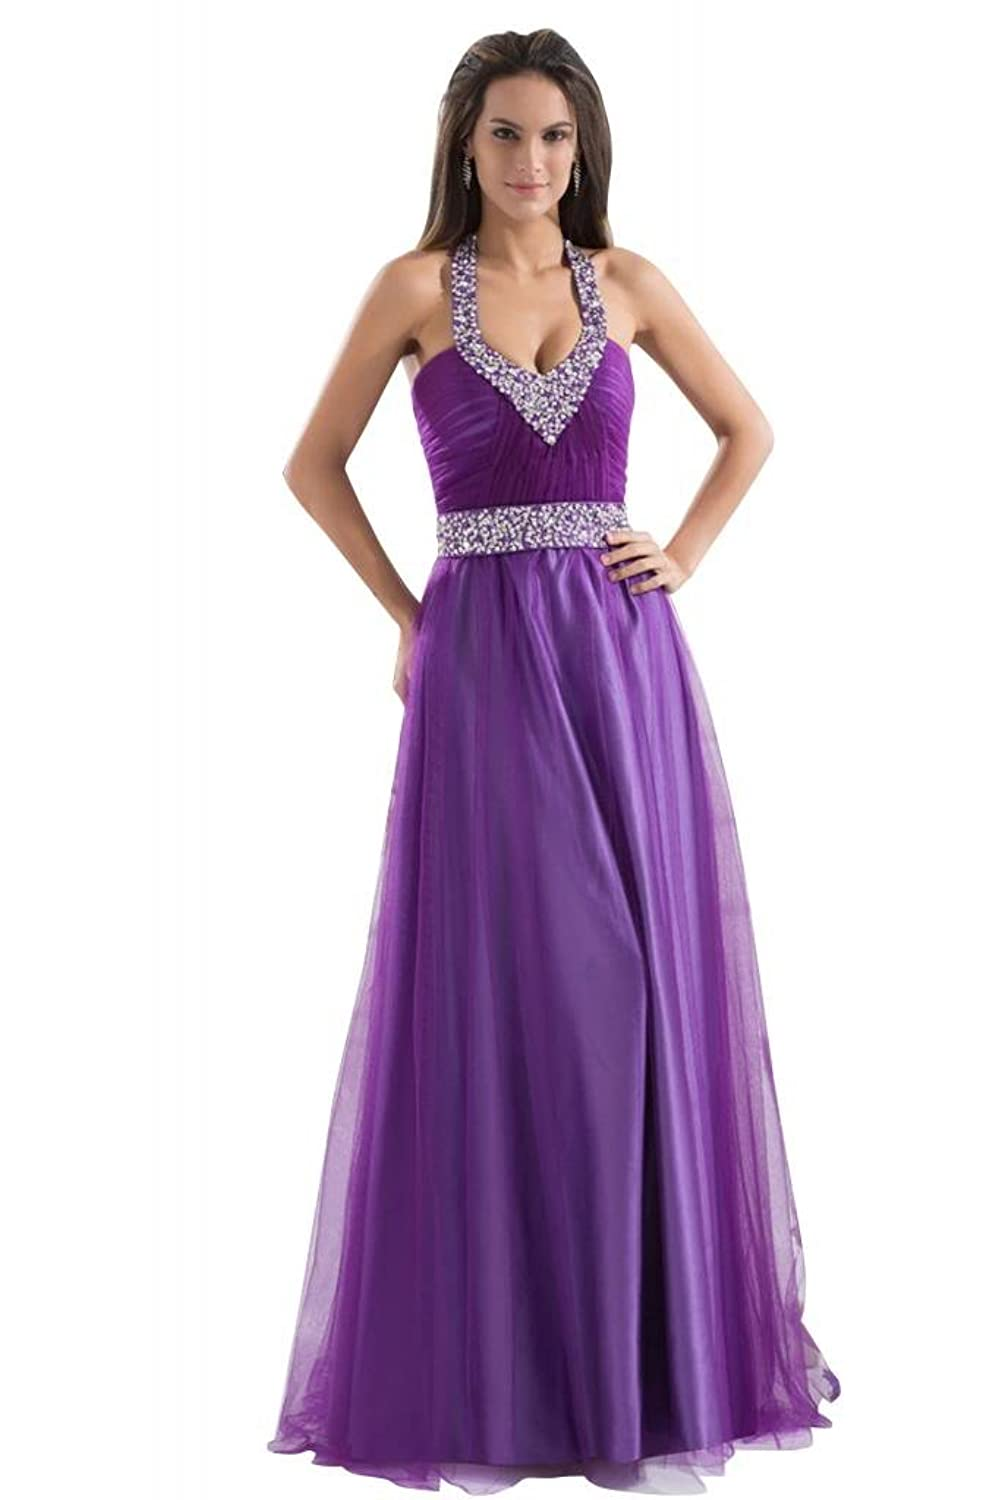 GEORGE BRIDE Purple Charming Halter Beaded Waist Long Evening Dress